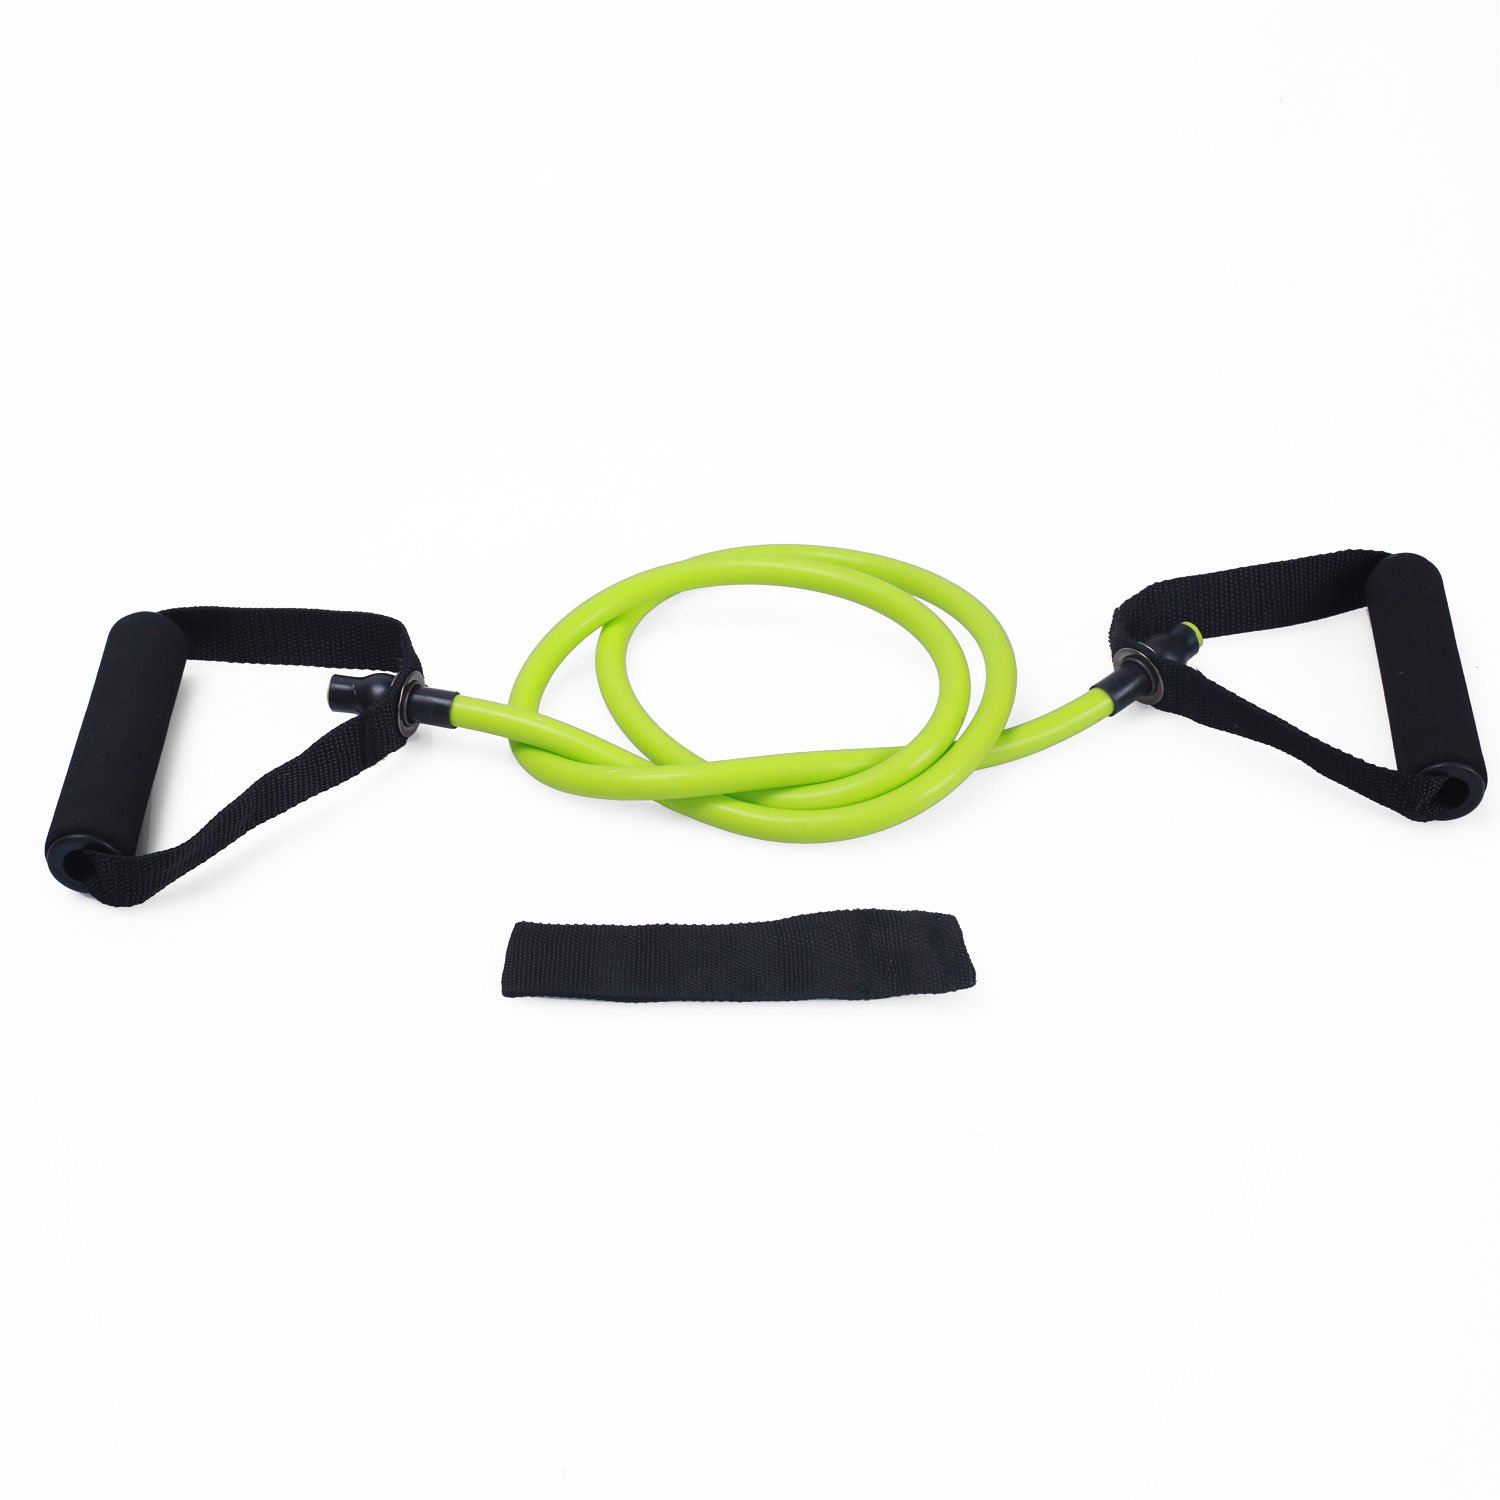 Adeco Single Resistance Band - Door Anchor and Starter Guide, green by Adeco